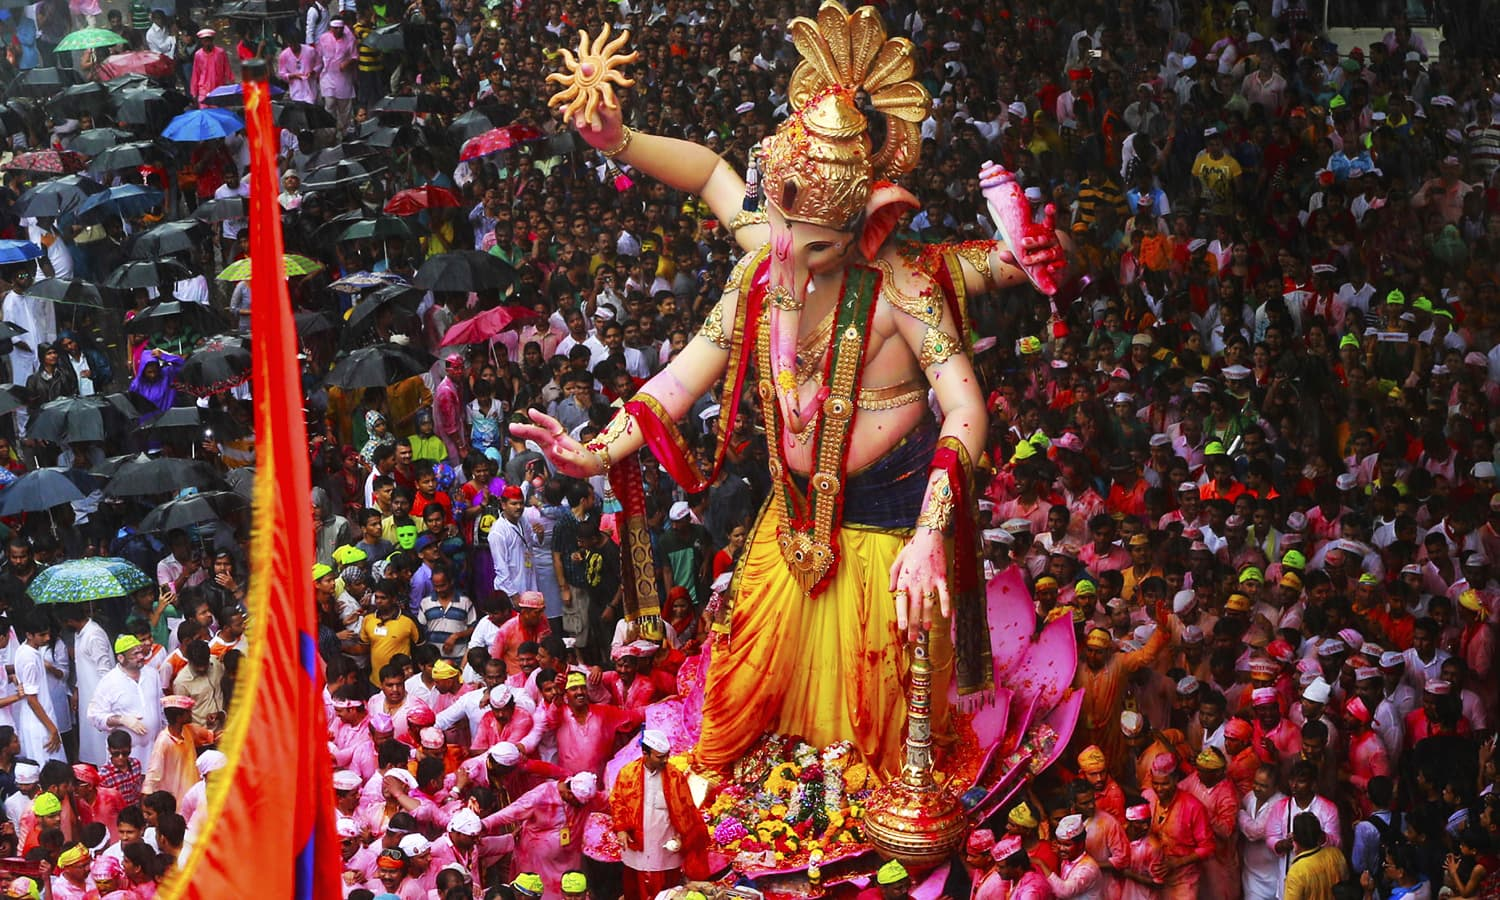 Hindu devotees participate in a procession towards